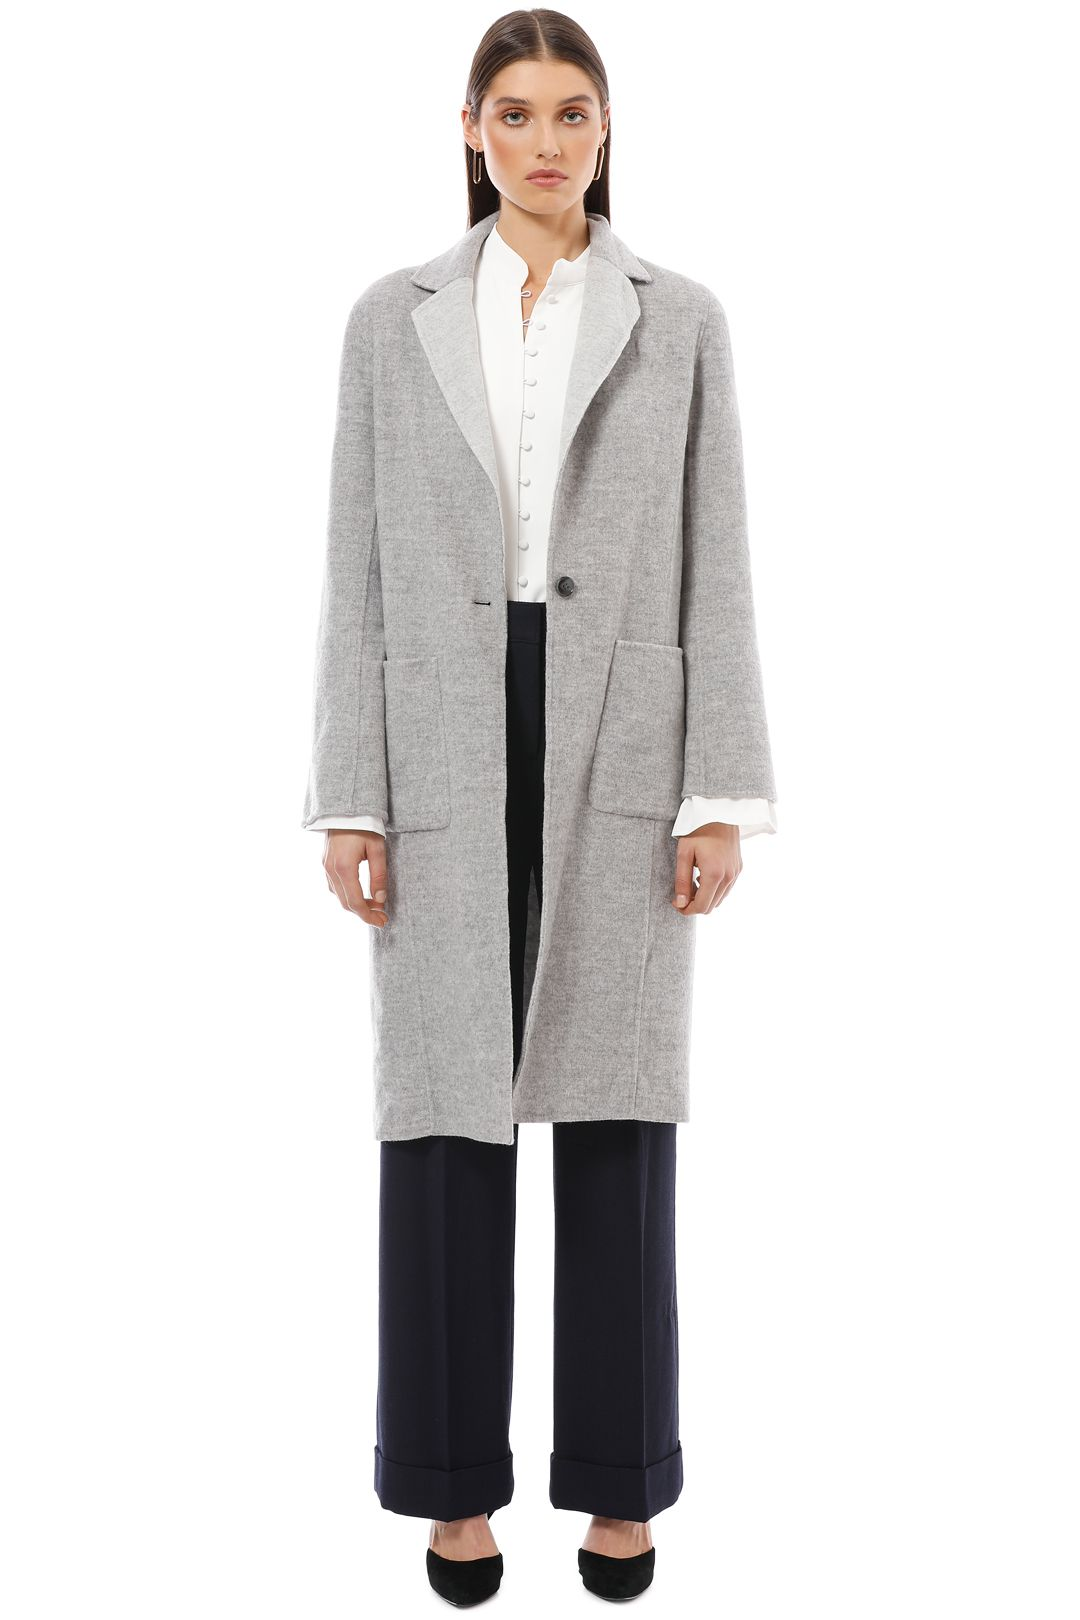 Saba - Kayla Reversible Coat - Grey - Front